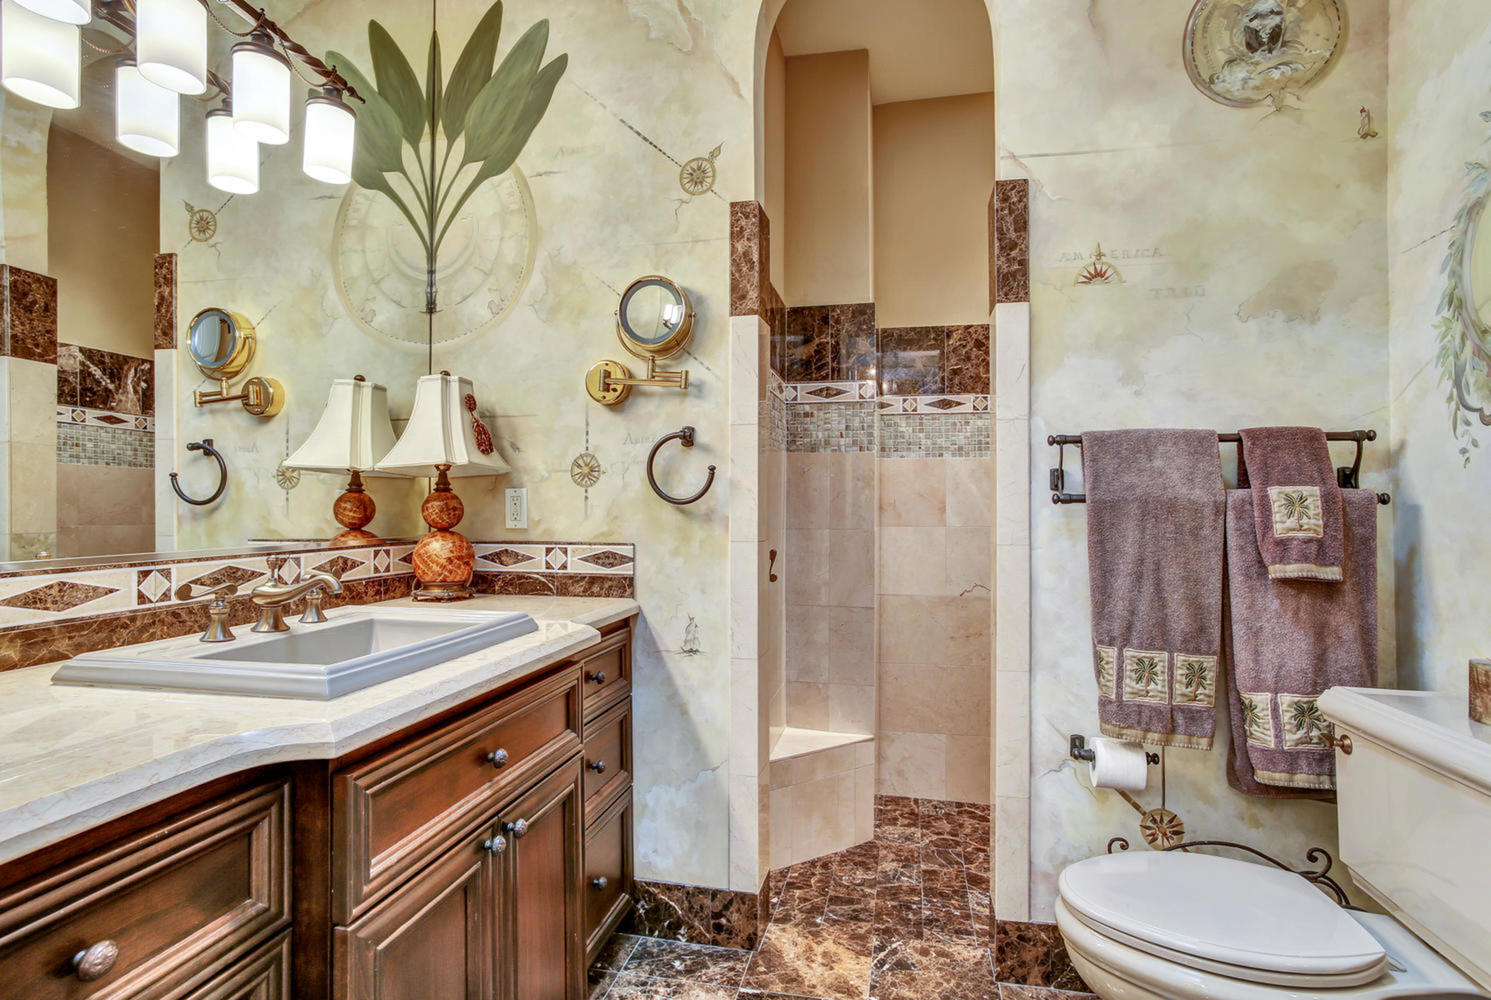 2639 n dundee st tampa fl large 033 65 his master bathroom 1491x1000 72dpi